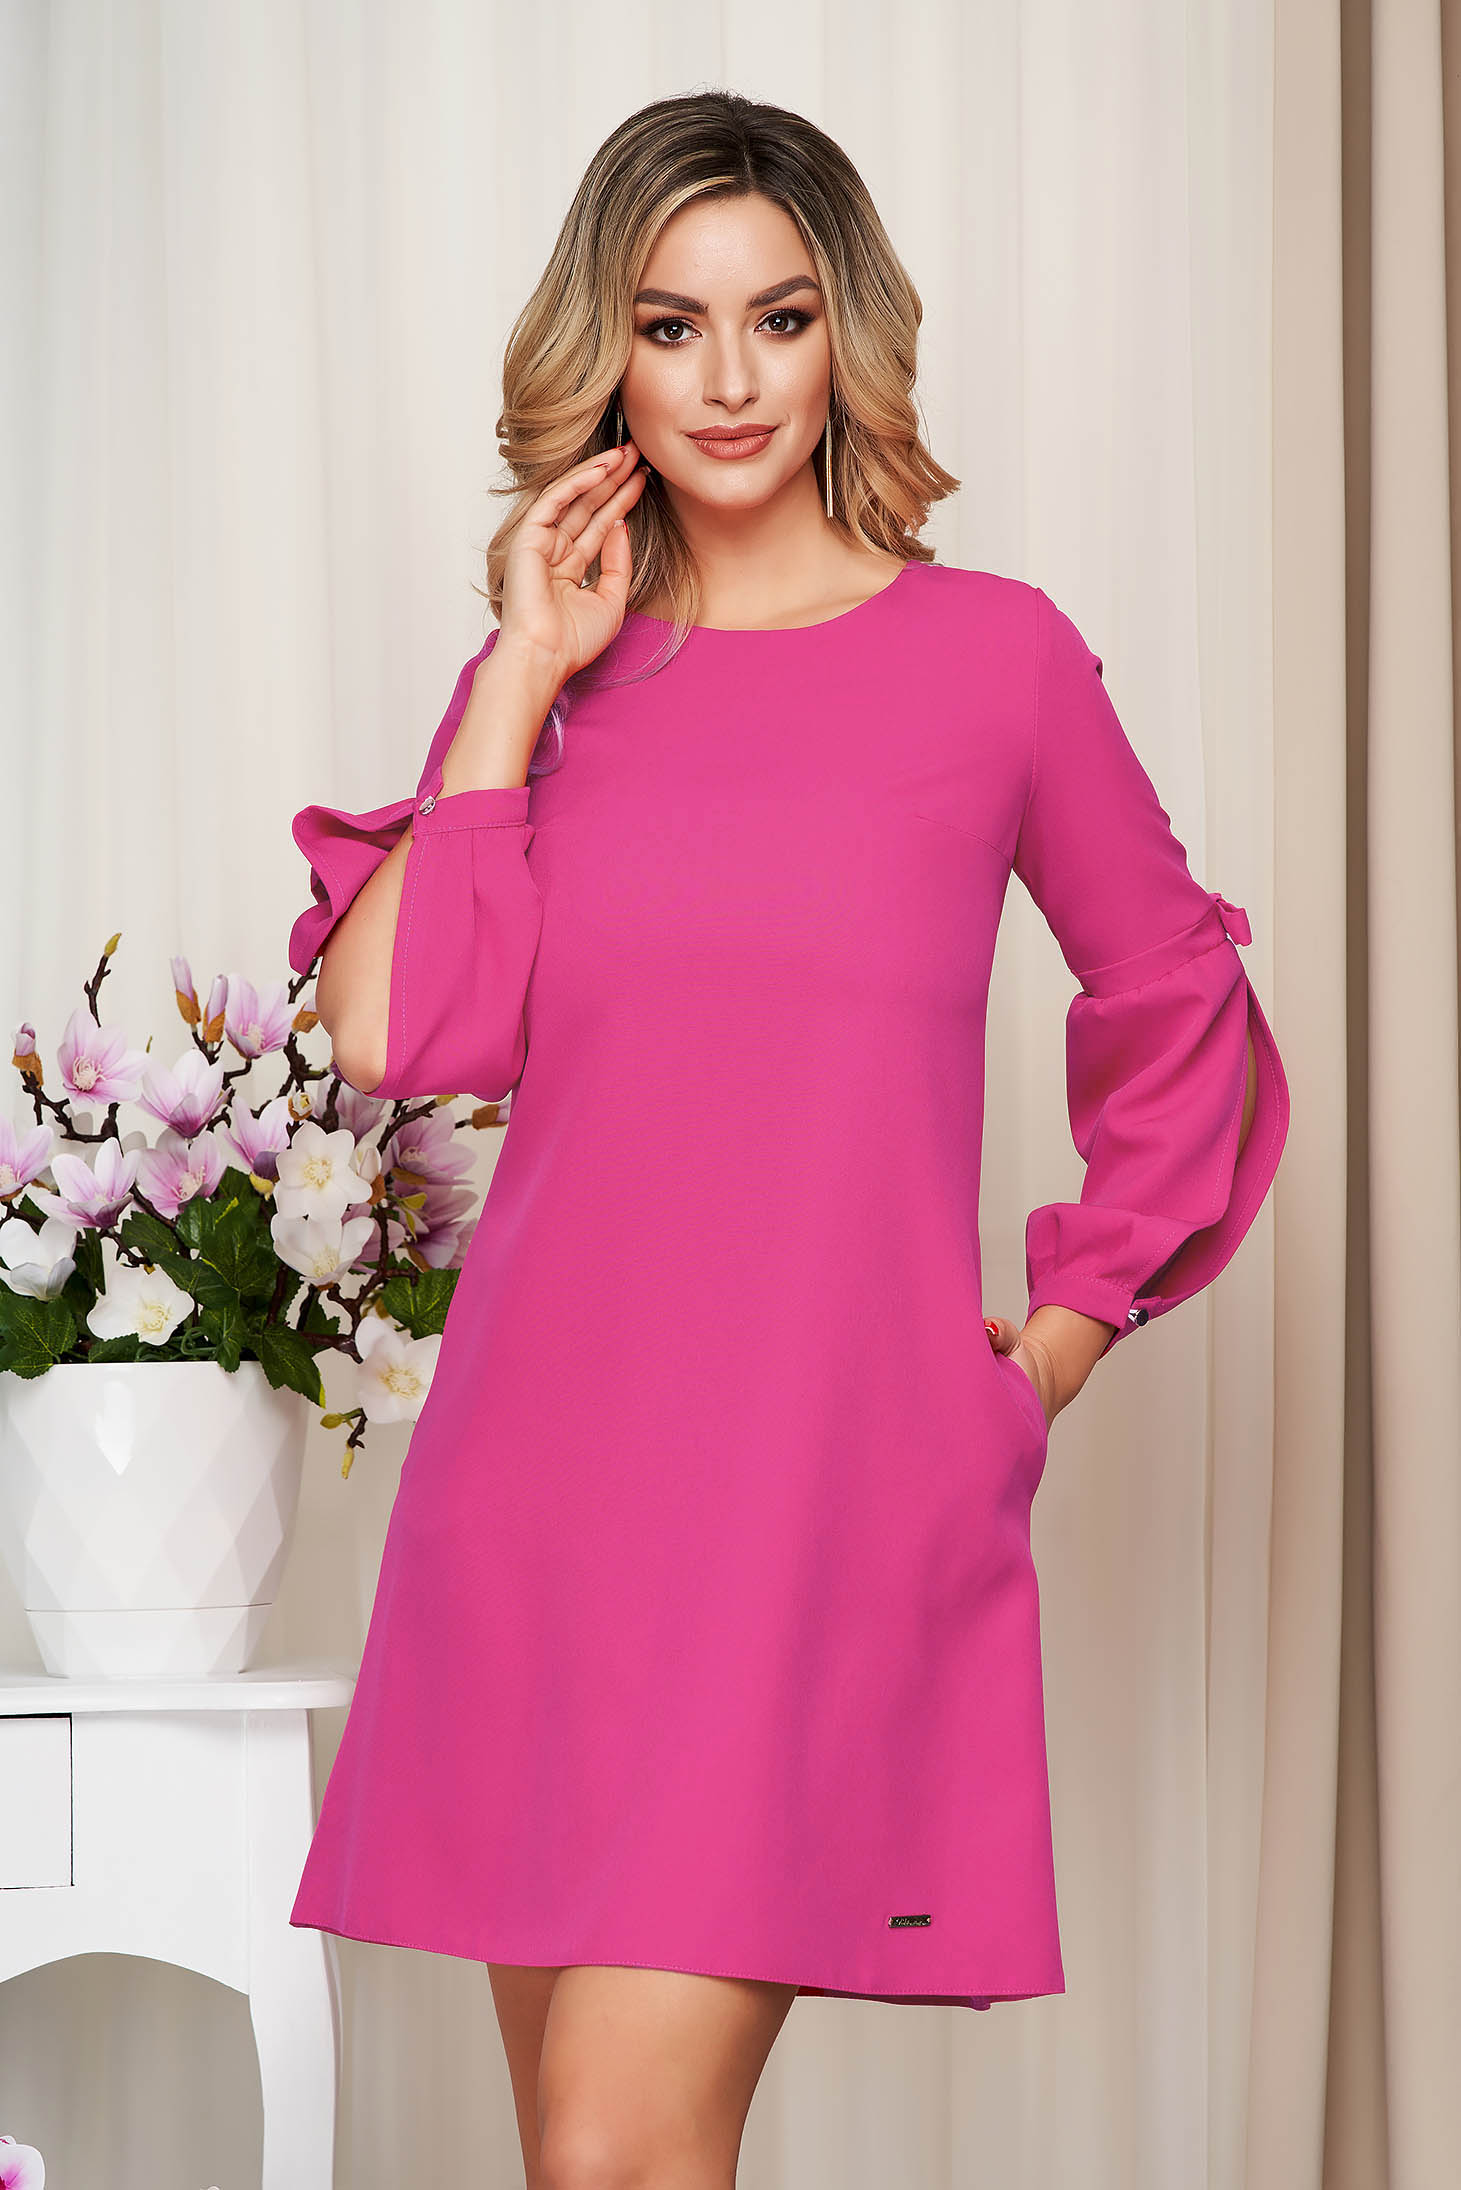 Dress fuchsia office cloth slightly elastic fabric loose fit with puffed sleeves